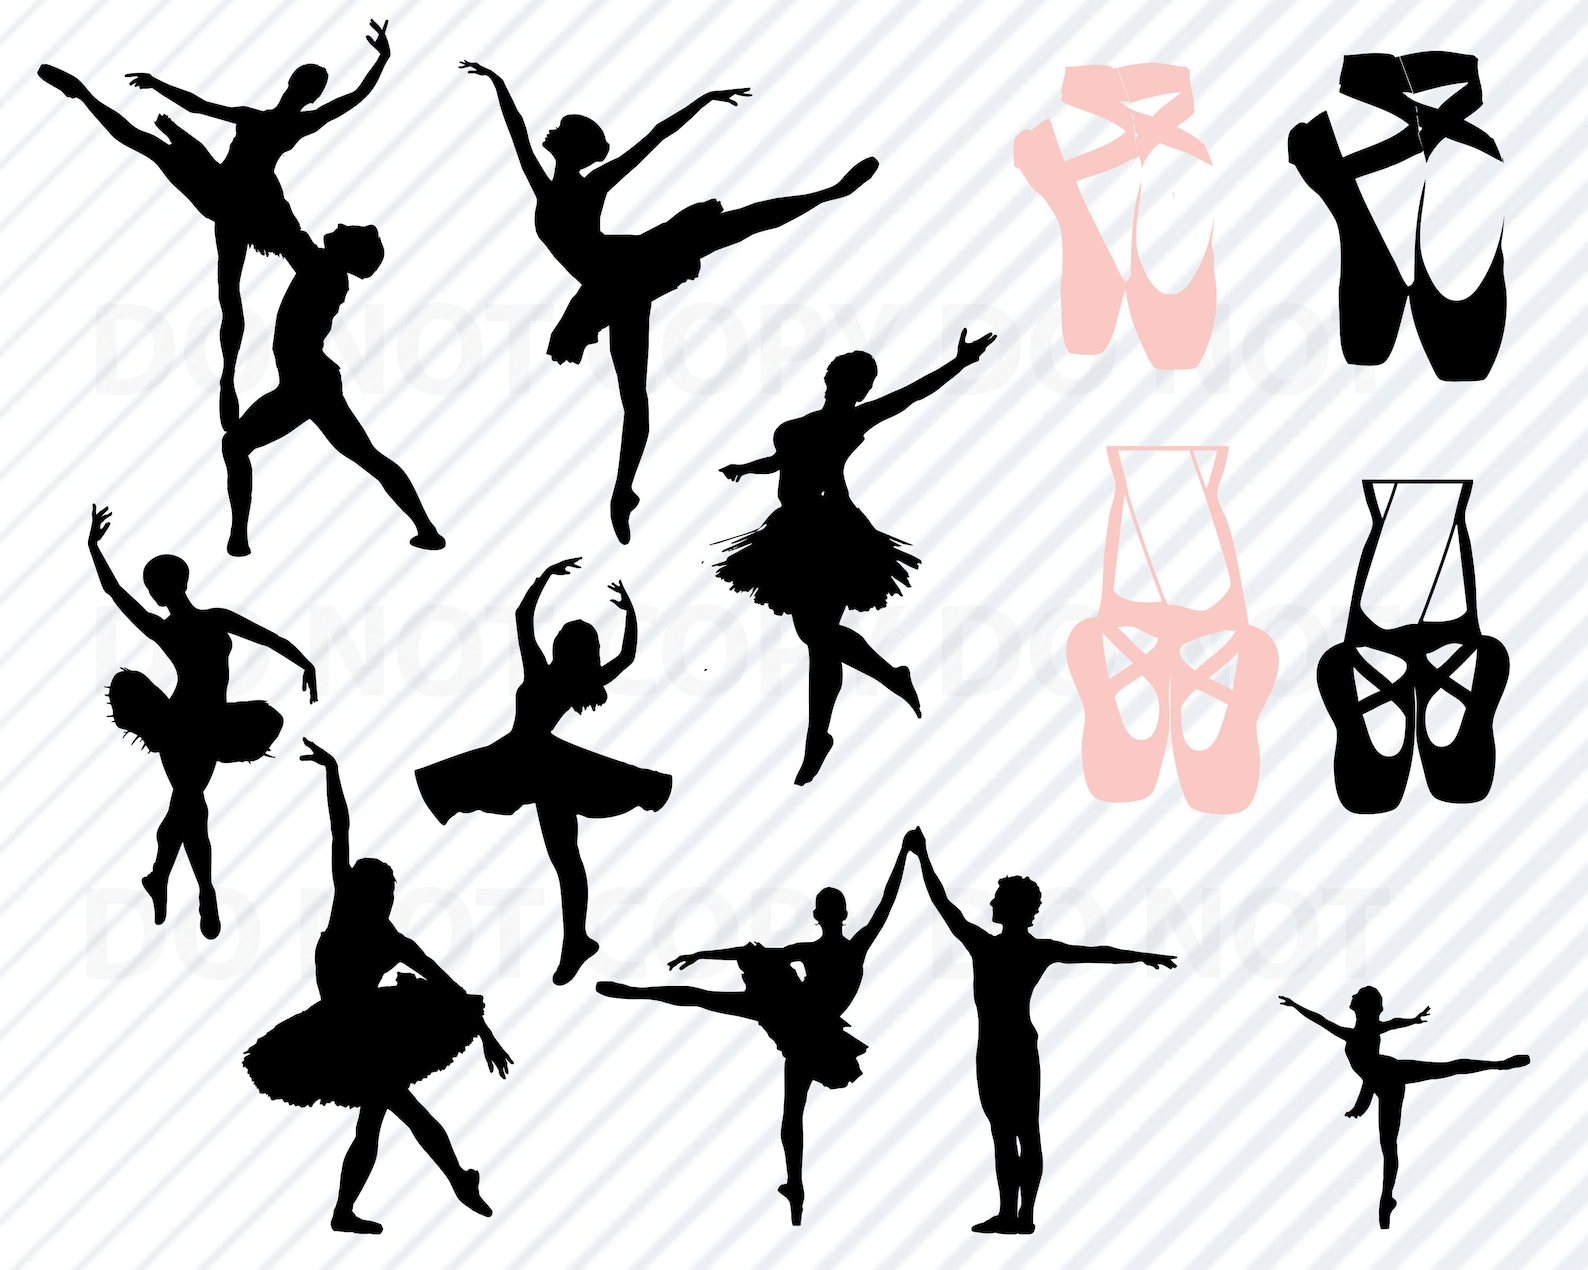 ballet svg ballet svg bundle silhouette clip art ballet shoes svg files for cricut- eps, png, dxf clipart girls dance images bal